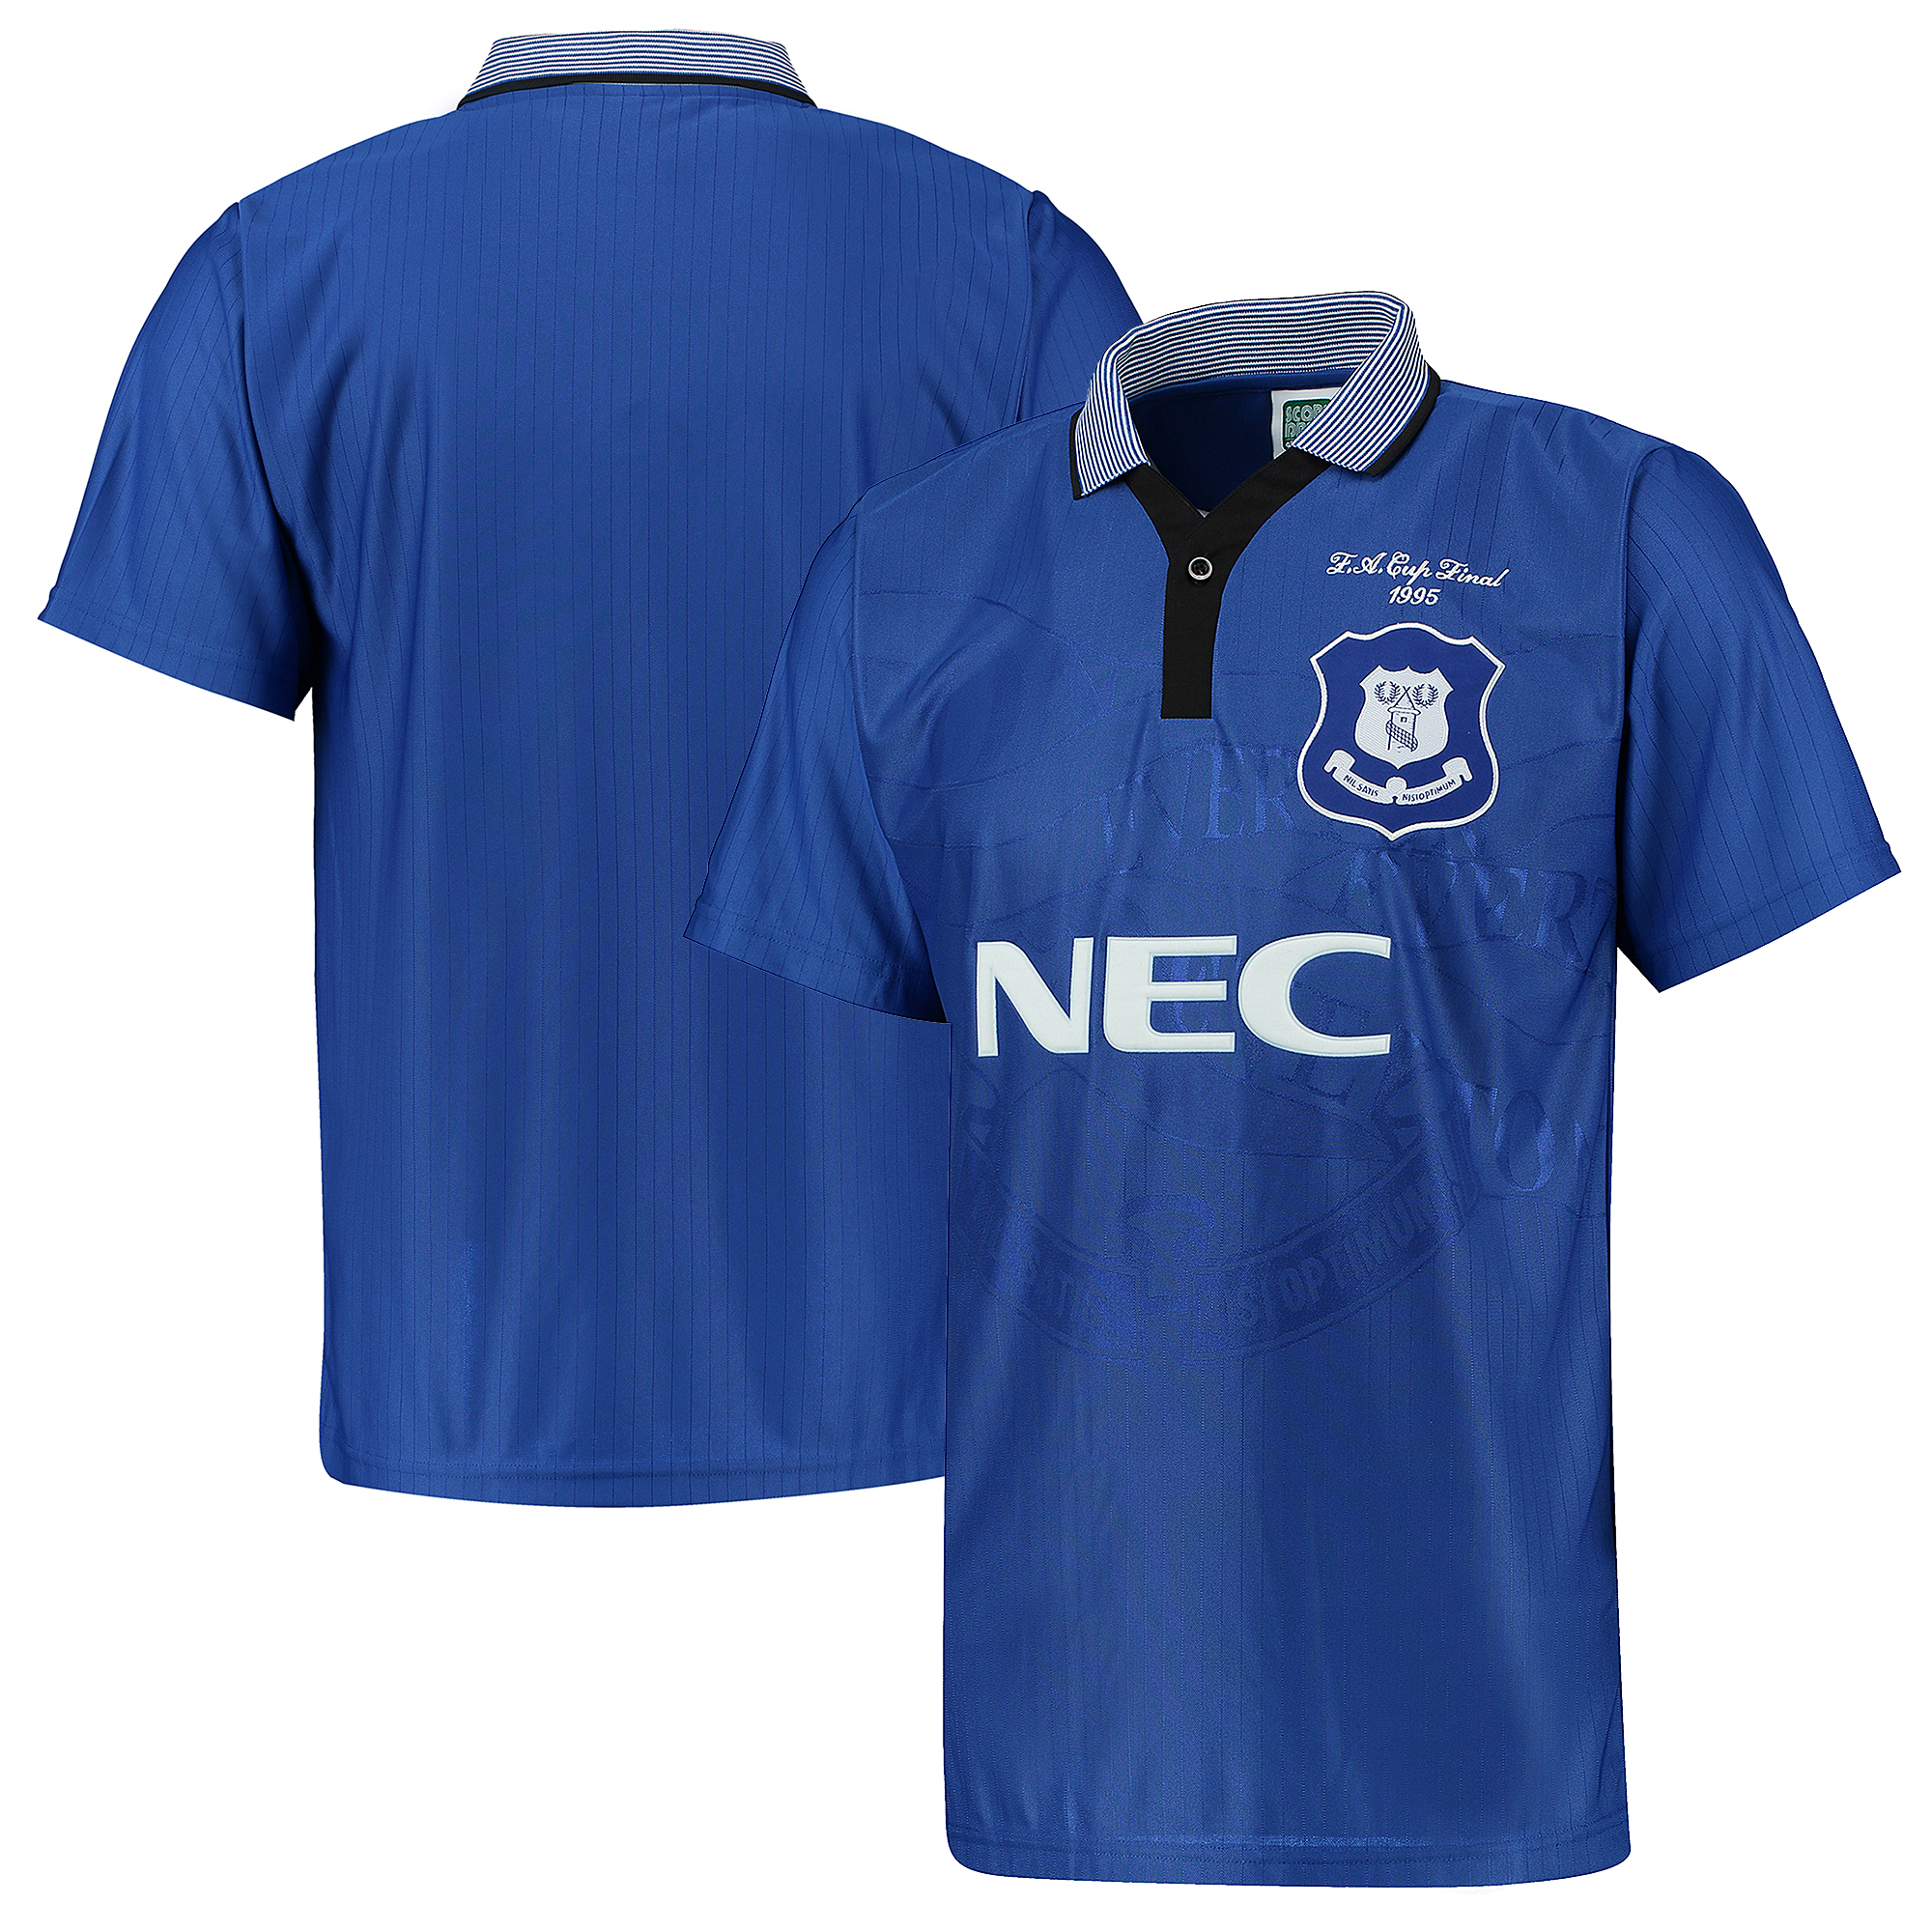 Everton 1995 FA Cup Winners Shirt - Blue